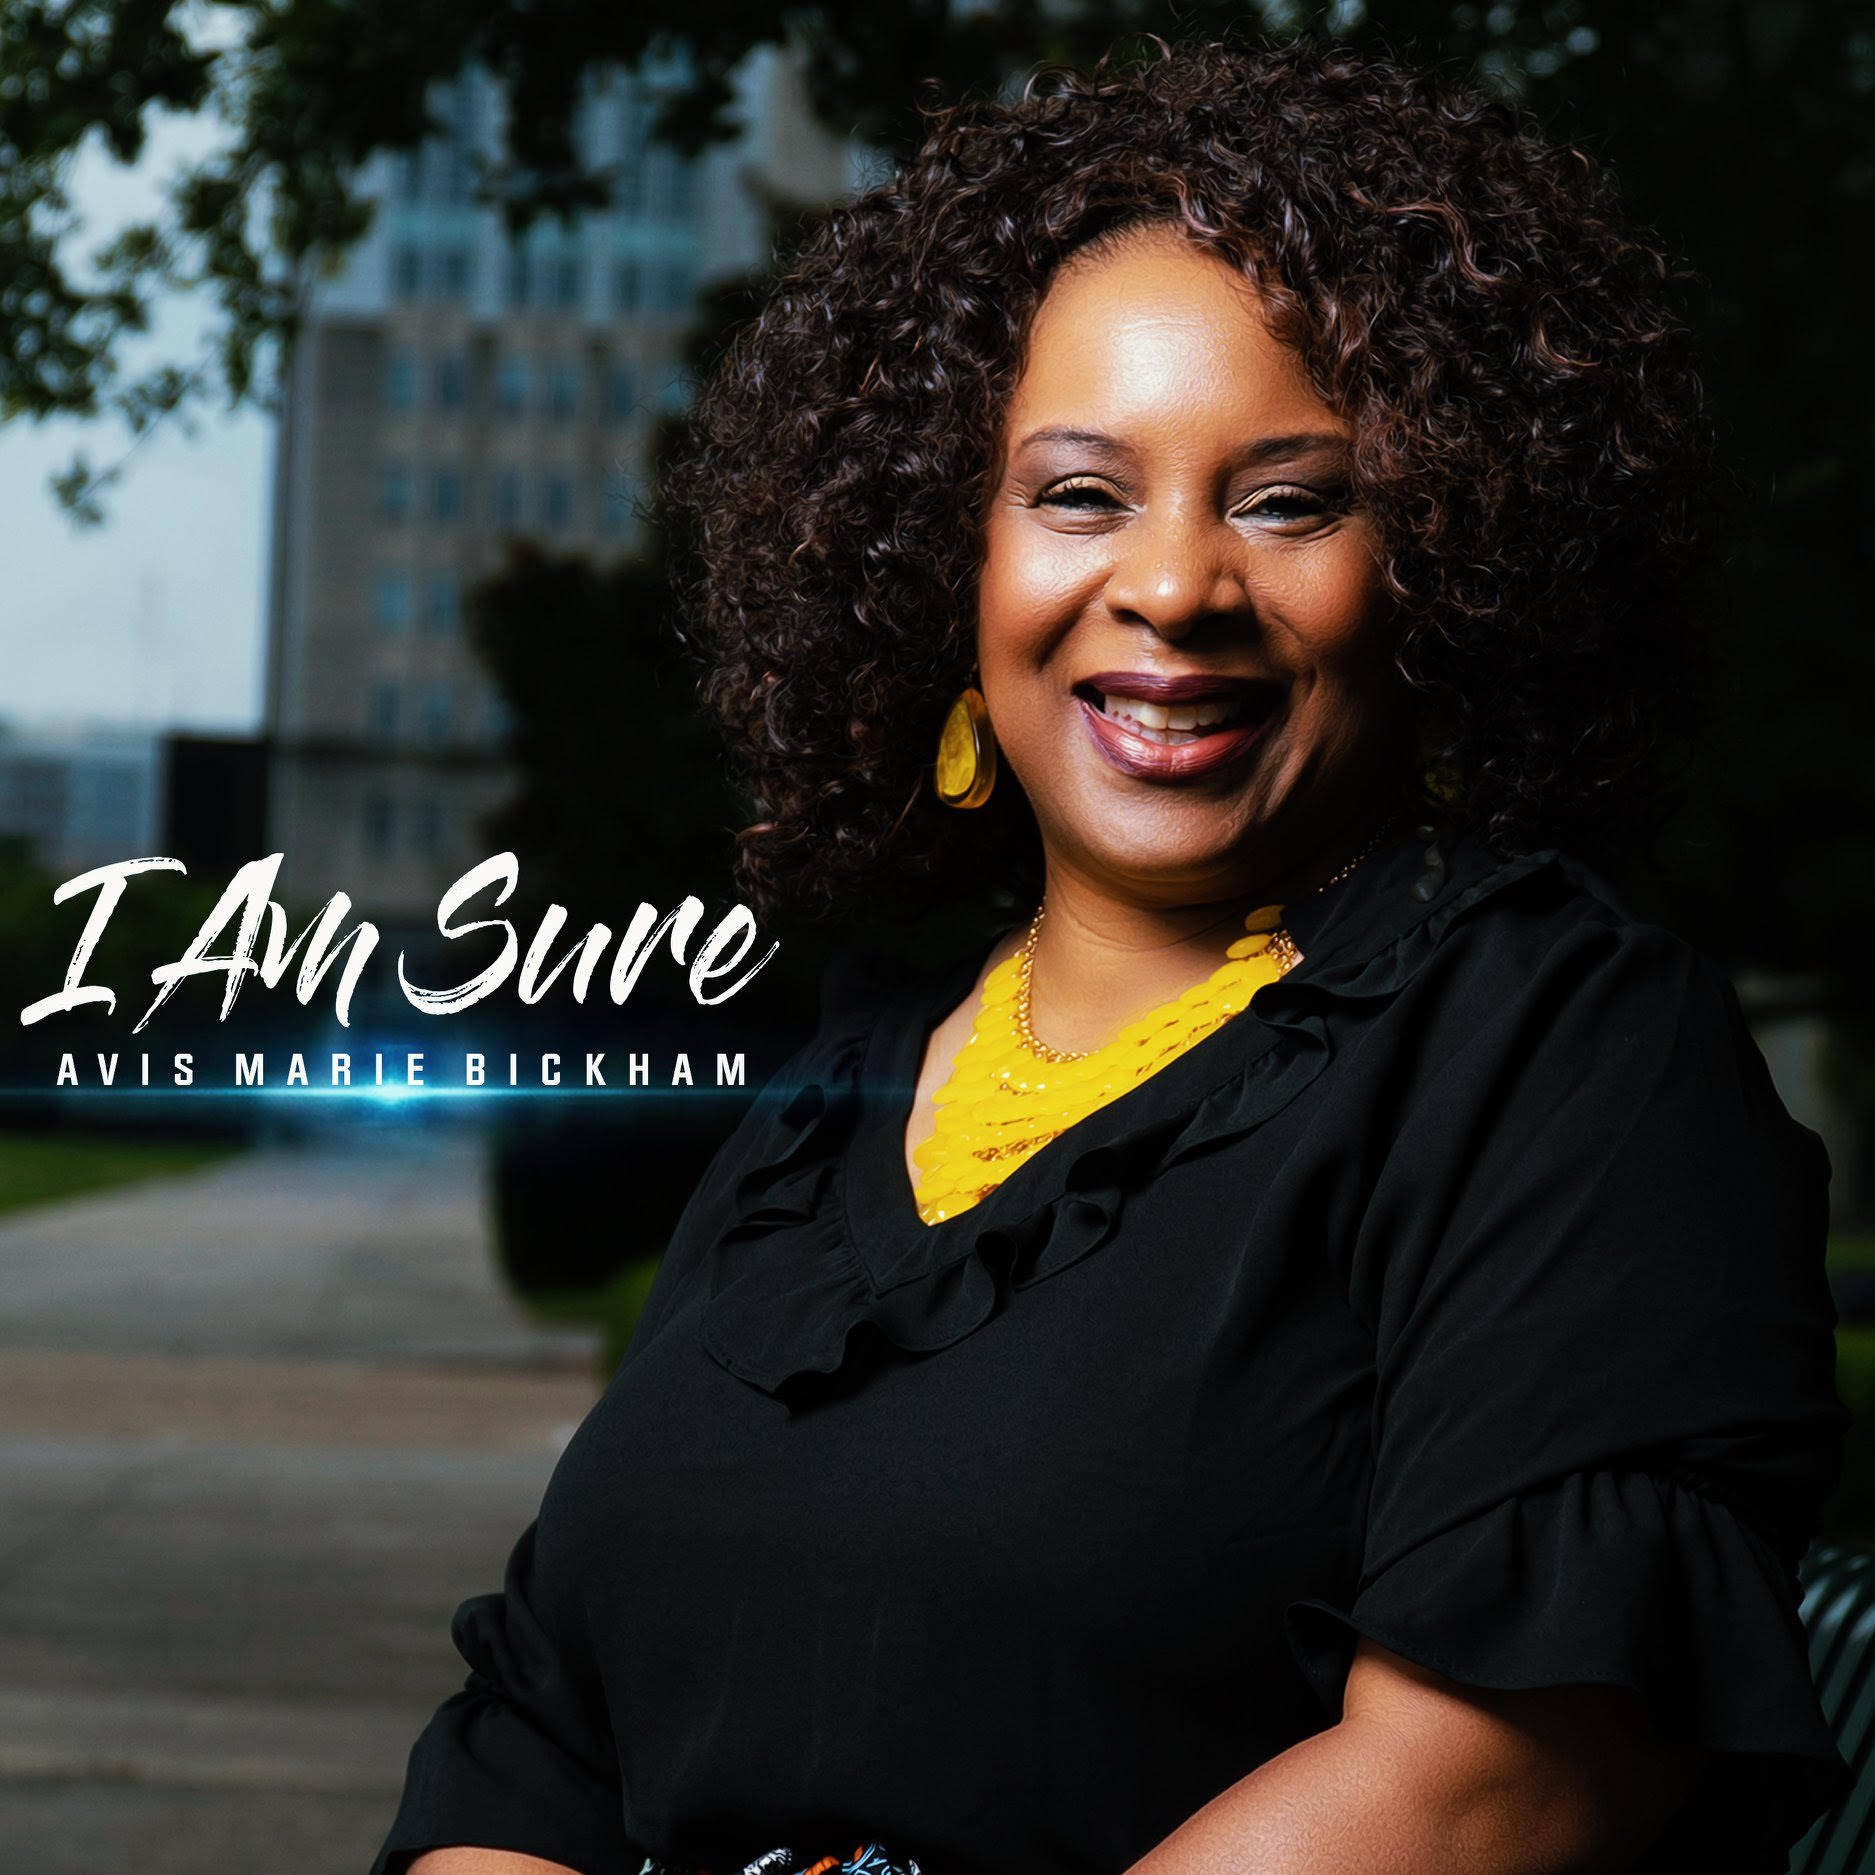 Gospel Artist Avis Marie Bickham Brings The Lord's Light Closer